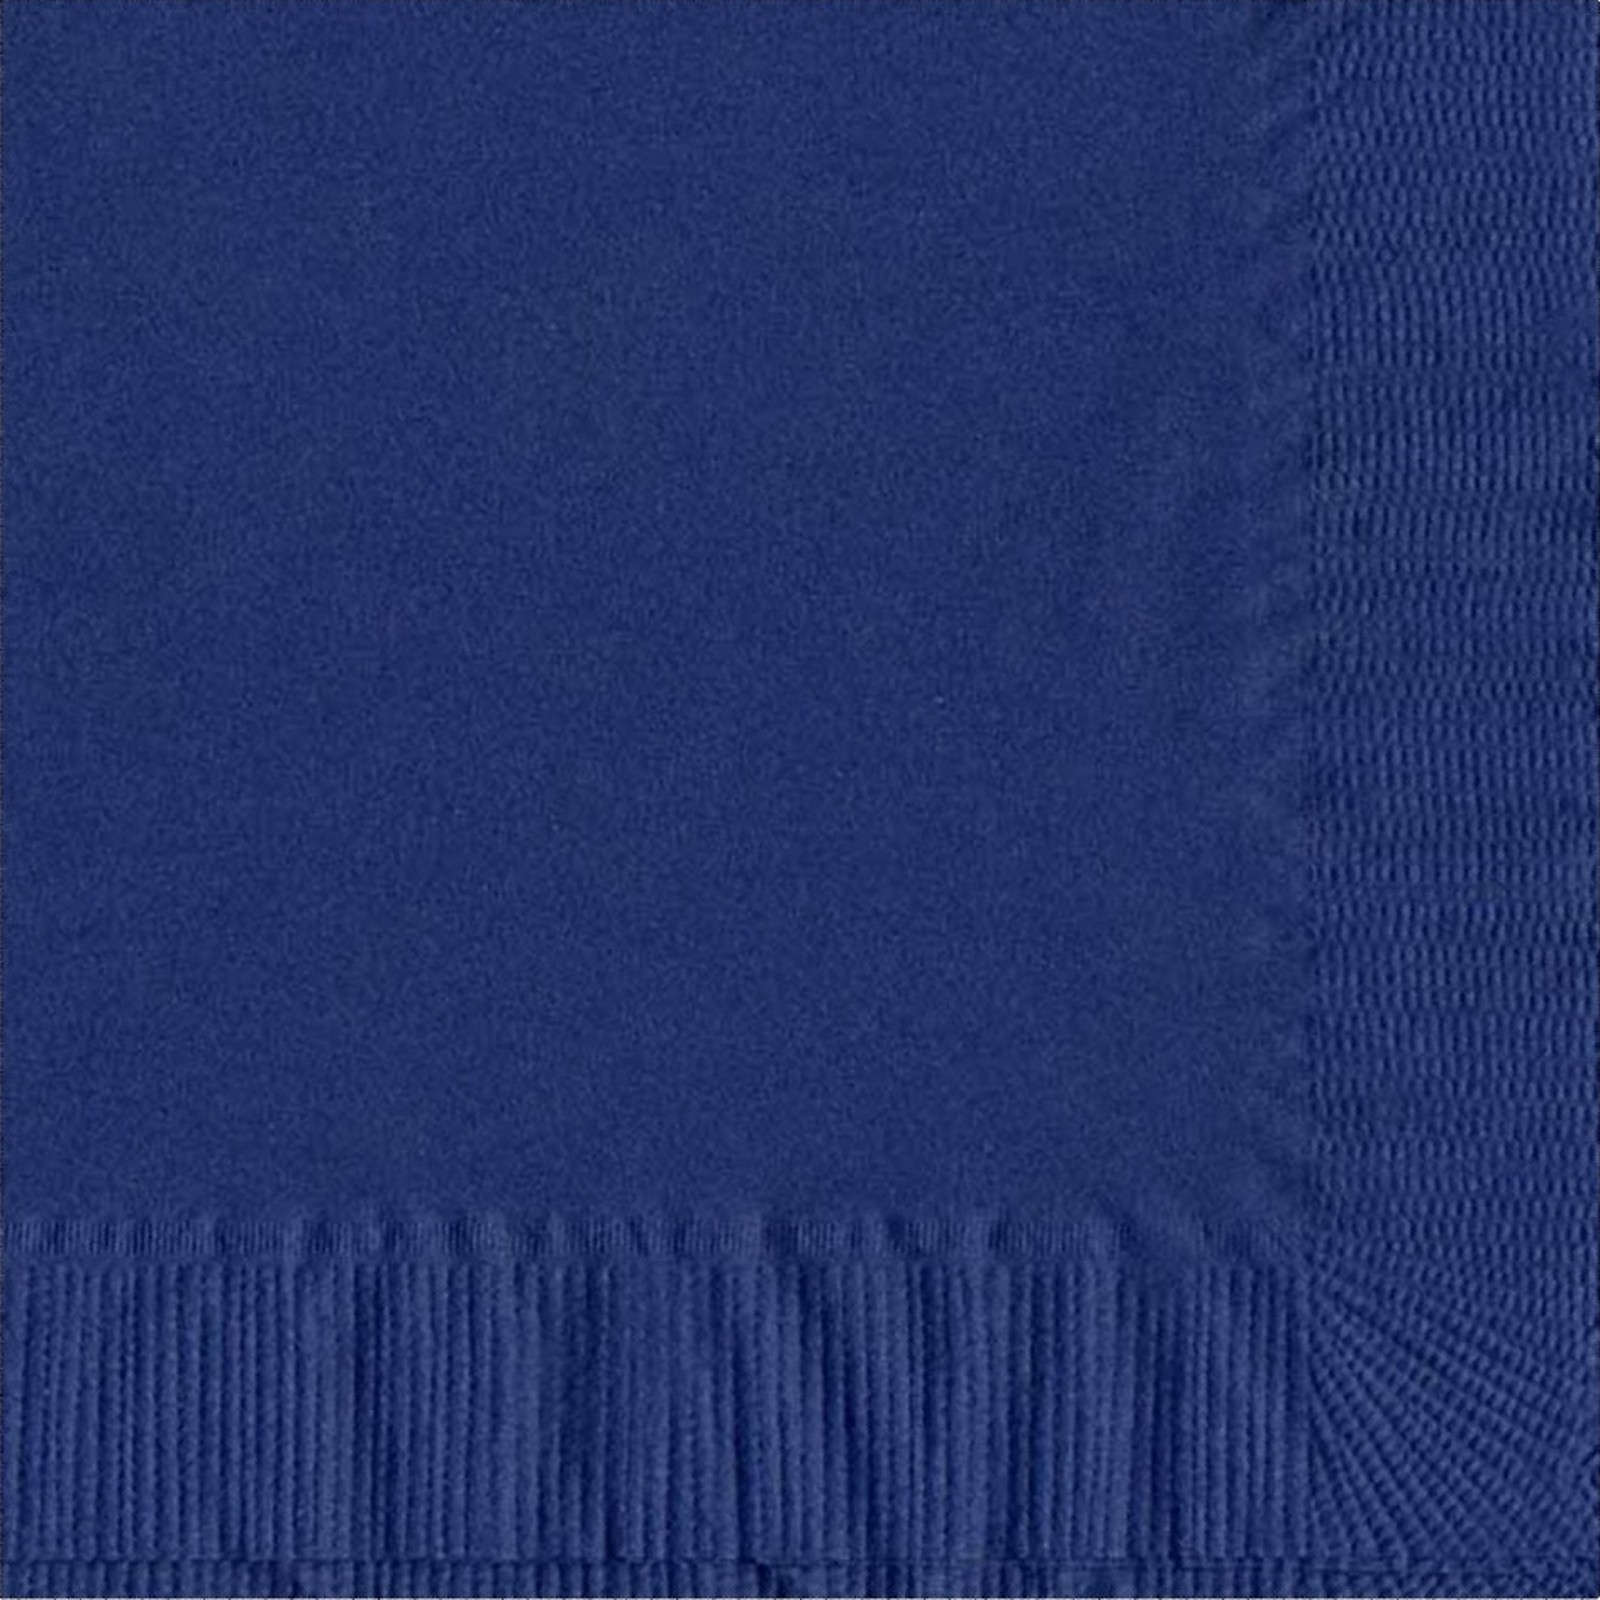 50 Plain Solid Colors Luncheon Dinner Napkins Paper - Navy Blue